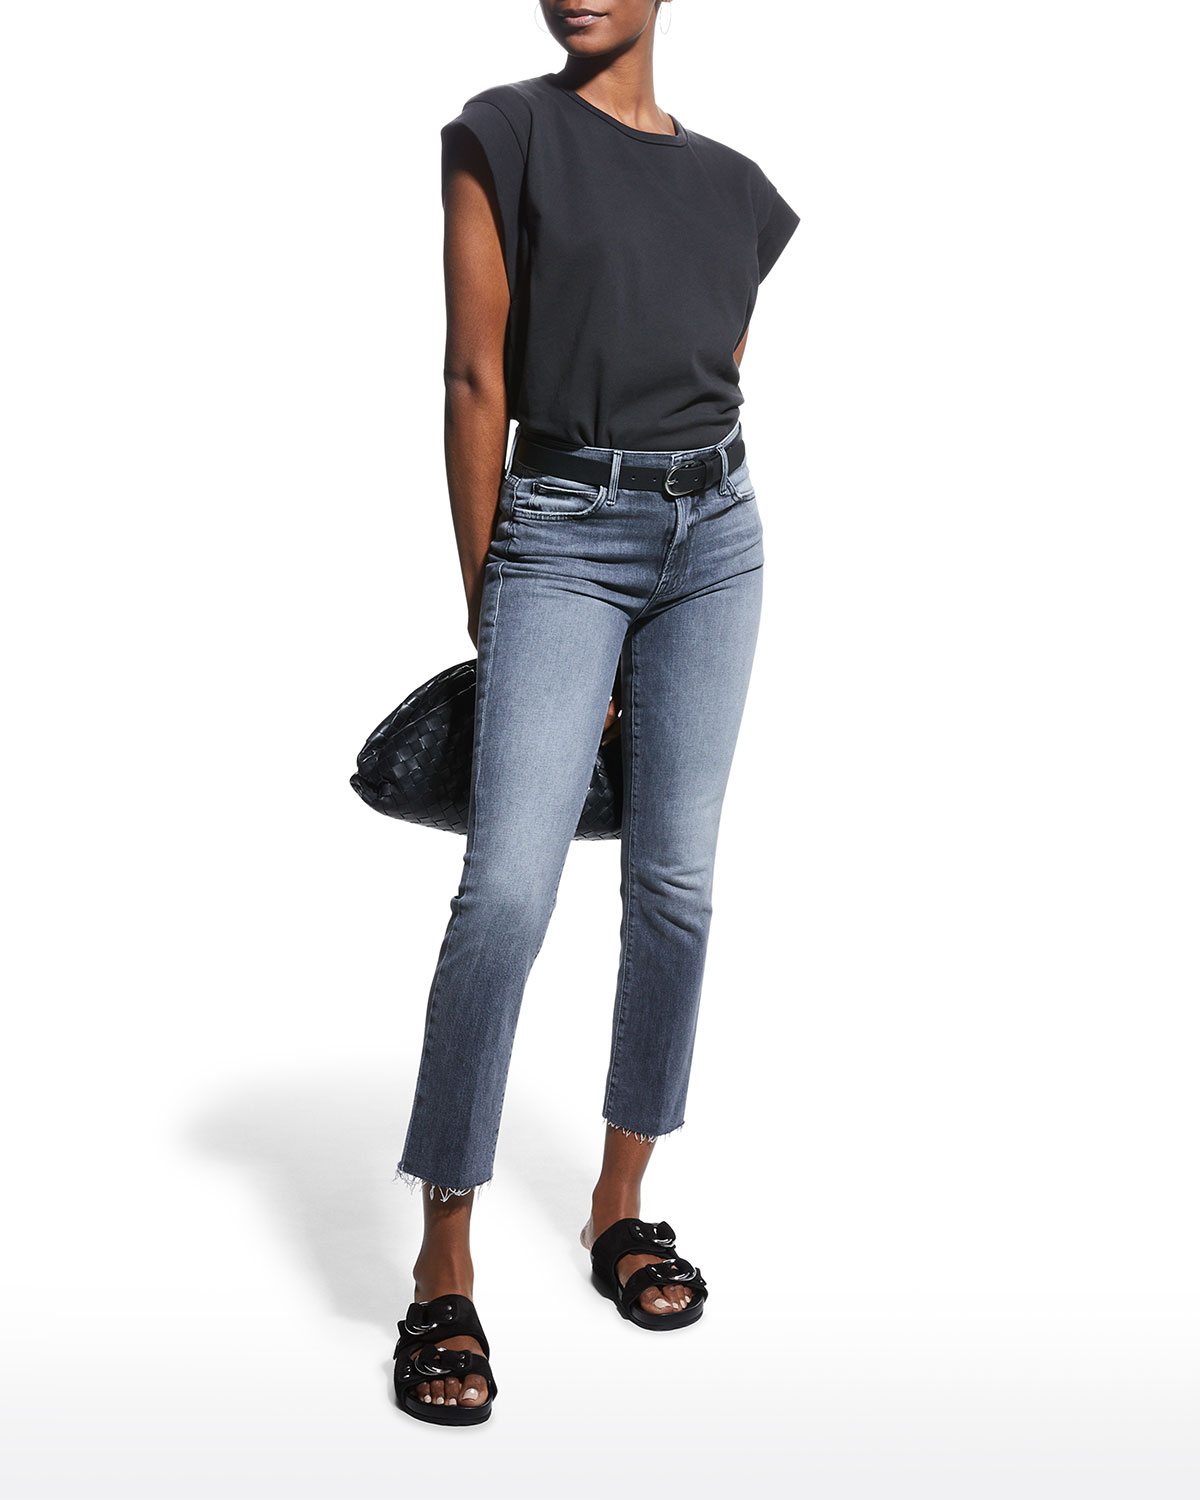 The Rascal Ankle Fray Jeans